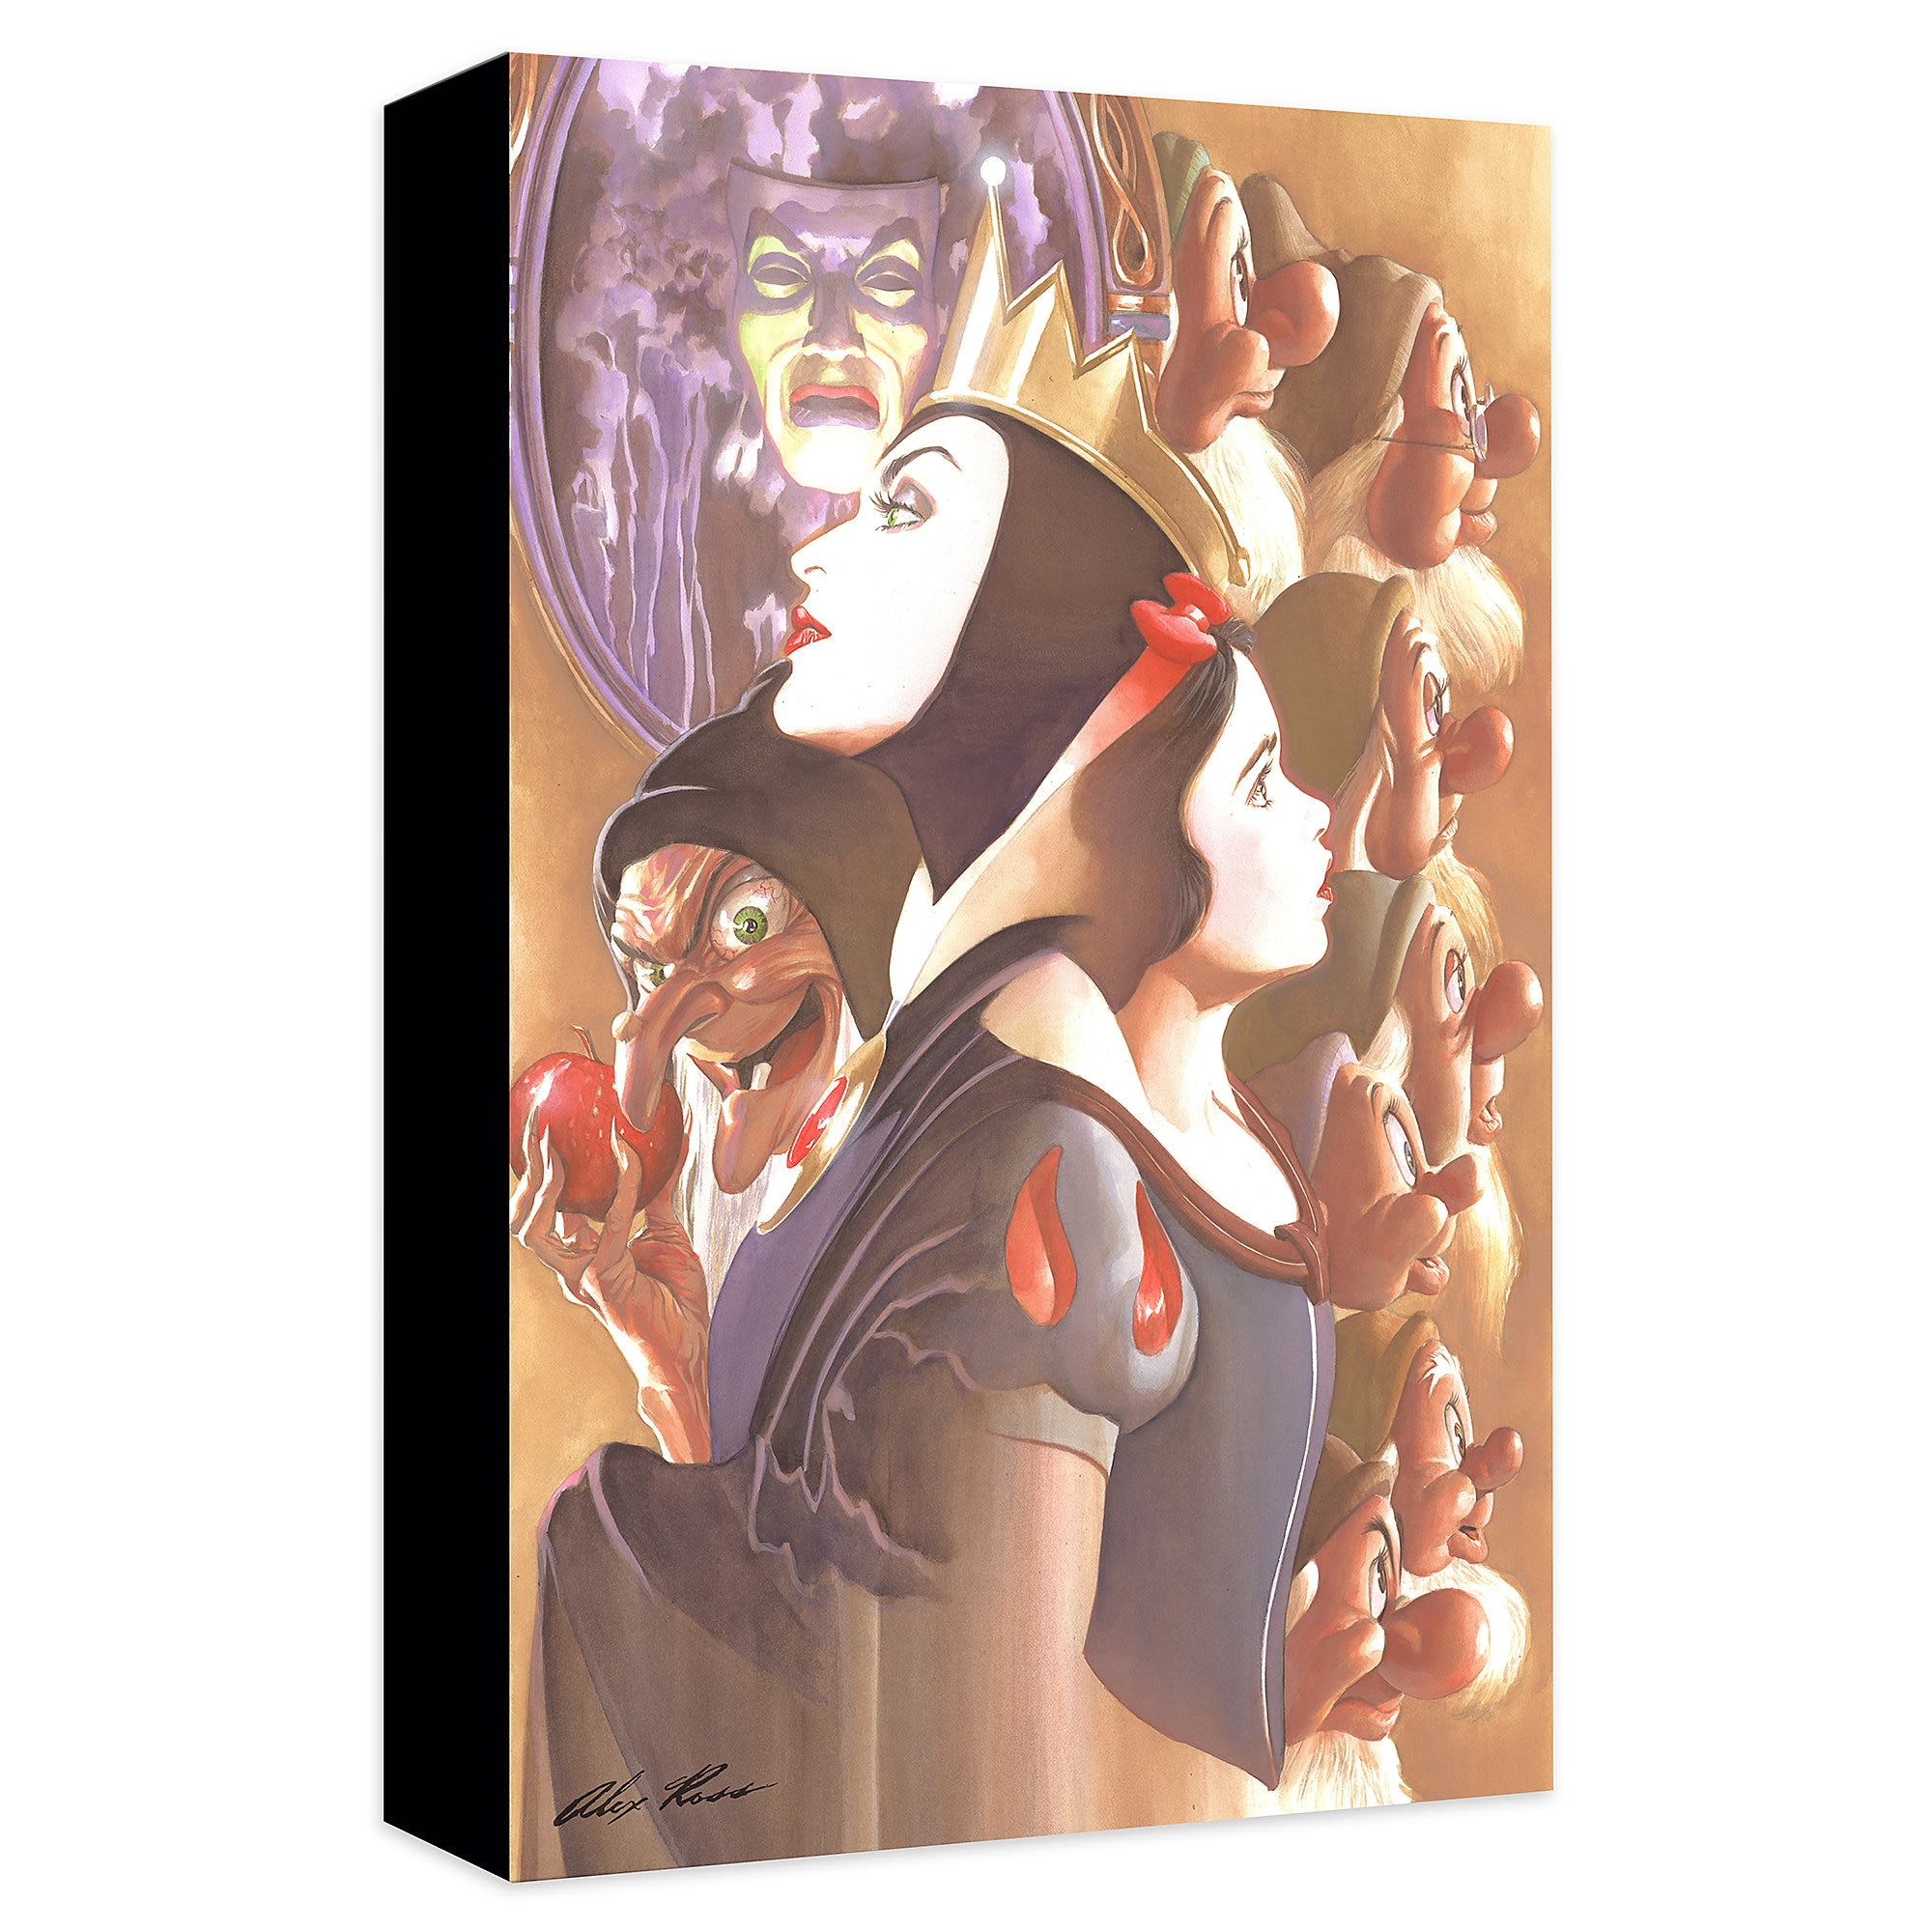 Snow White ''Once There Was a Princess'' Giclée on Canvas by Alex Ross